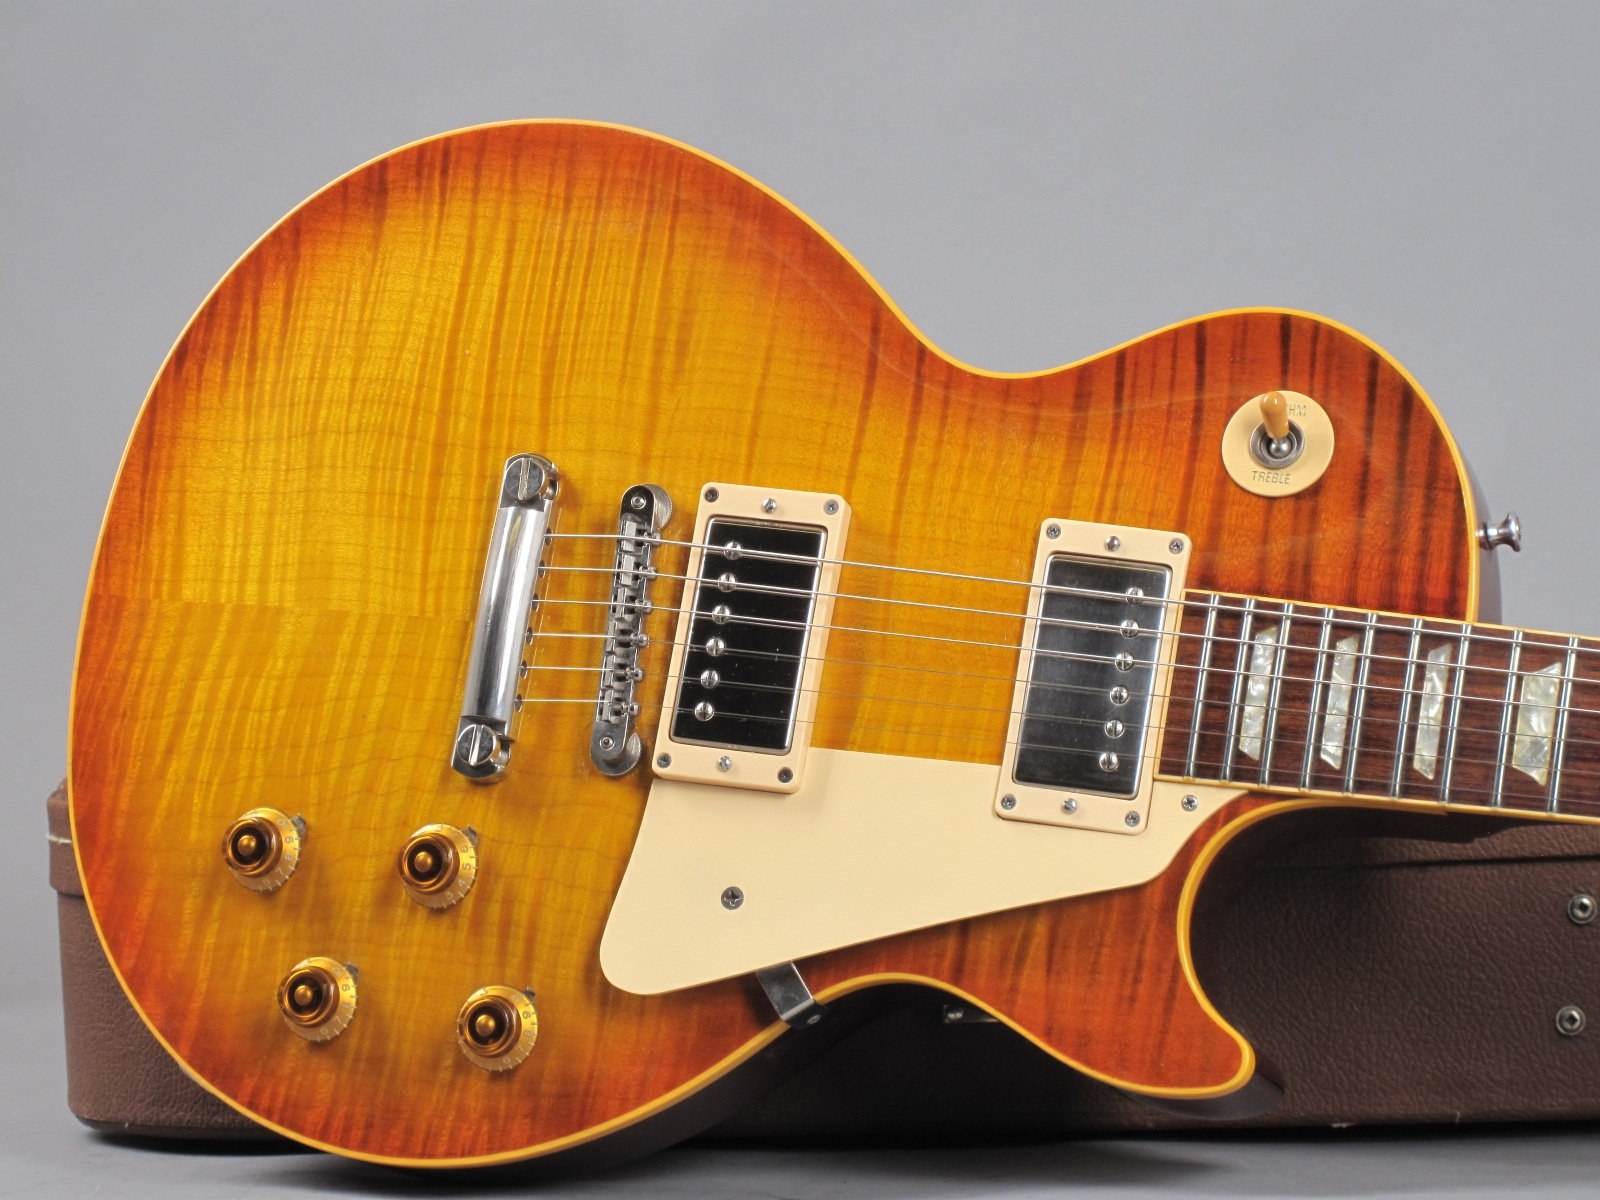 https://guitarpoint.de/app/uploads/products/1994-gibson-les-paul-1959-reissue-sunburst/1994-Gibson-Les-Paul-1959-Reissue-Sunburst-94315_22.jpg